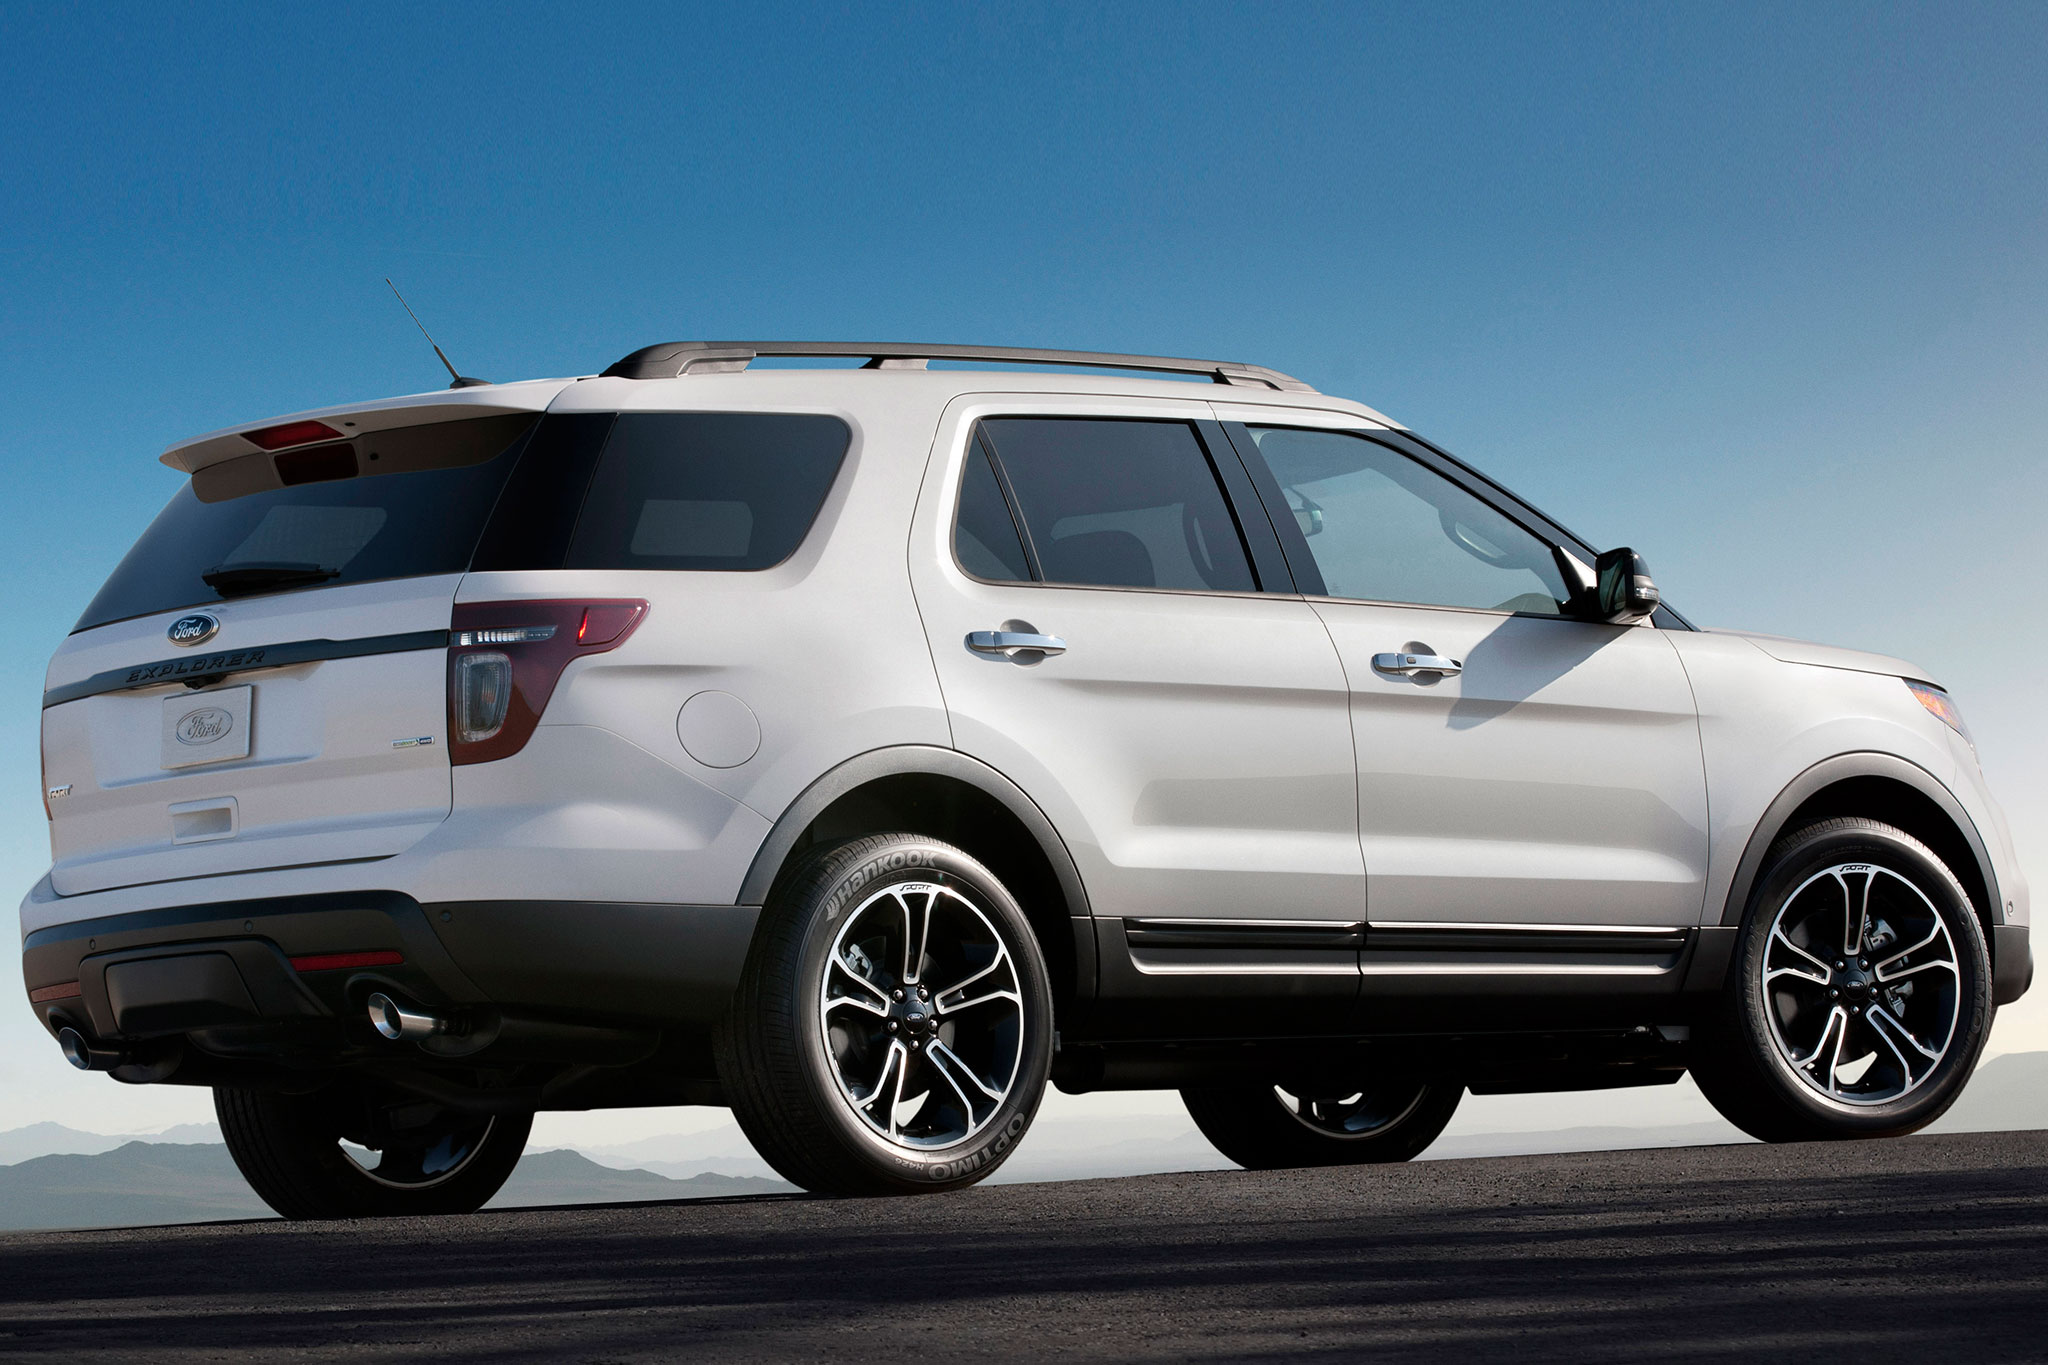 2014 FORD EXPLORER - Image #6